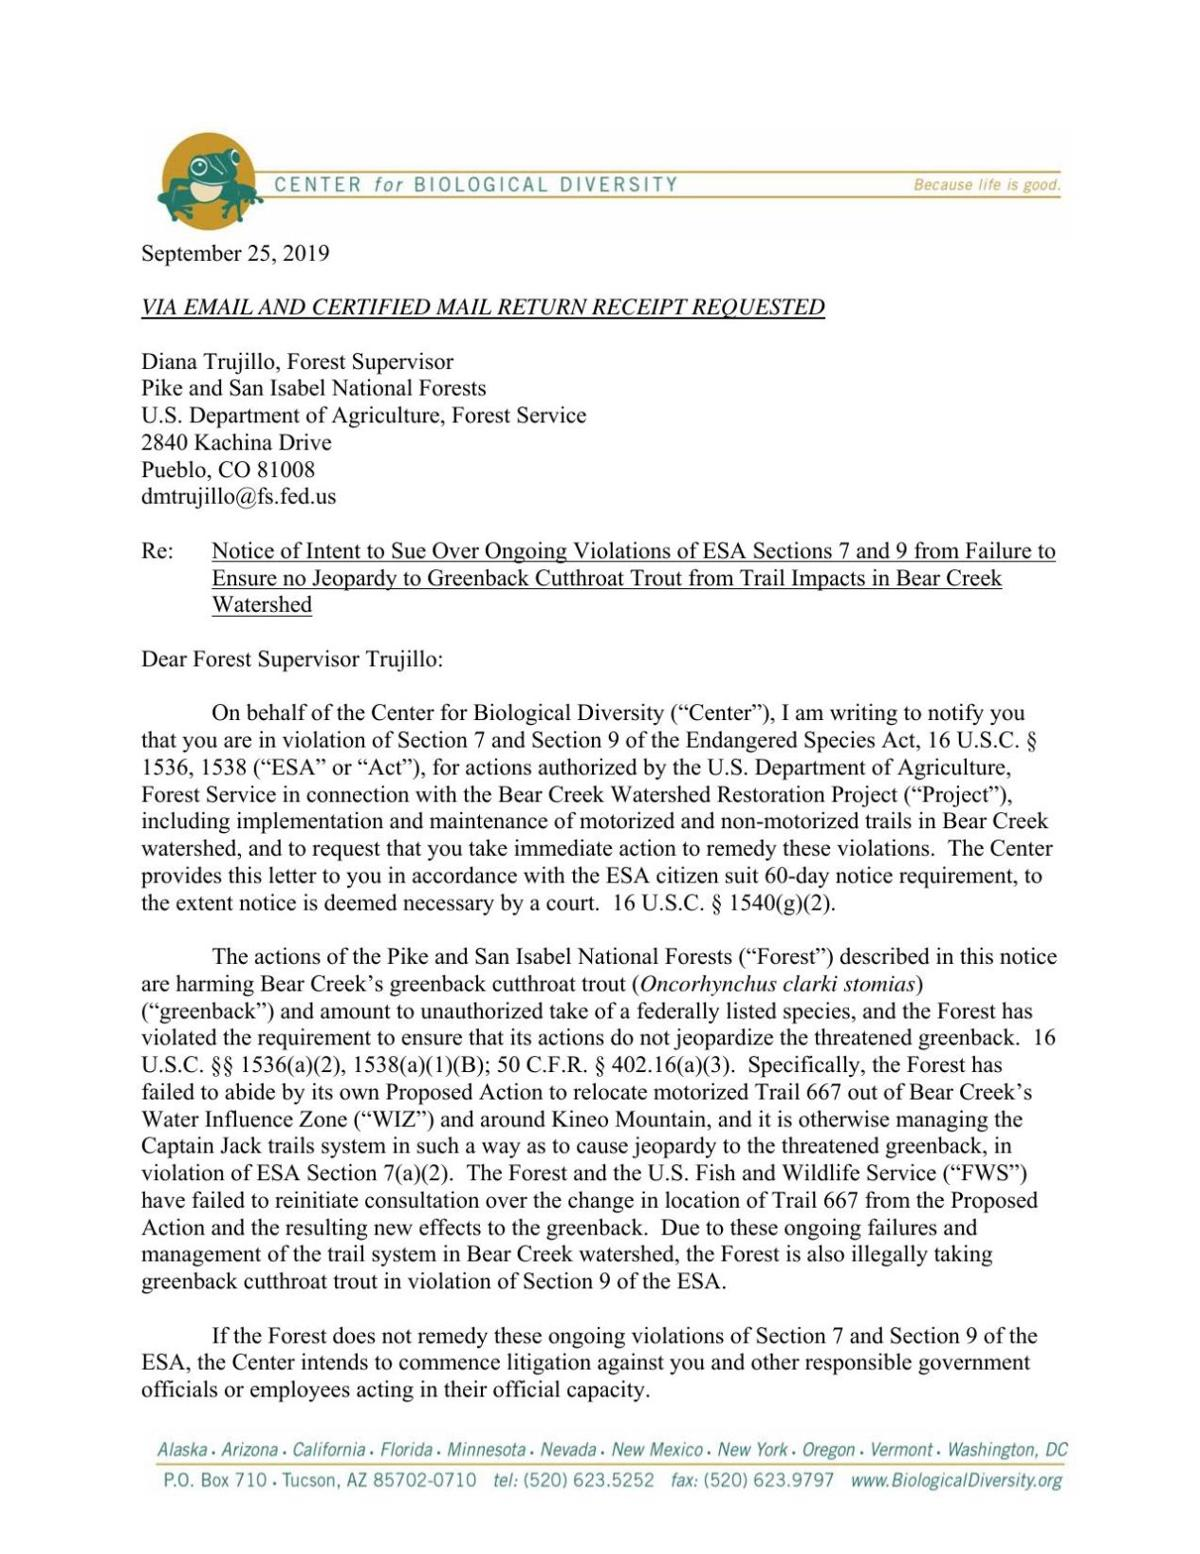 Notice of intent to sue concerning greenback cutthroat trout